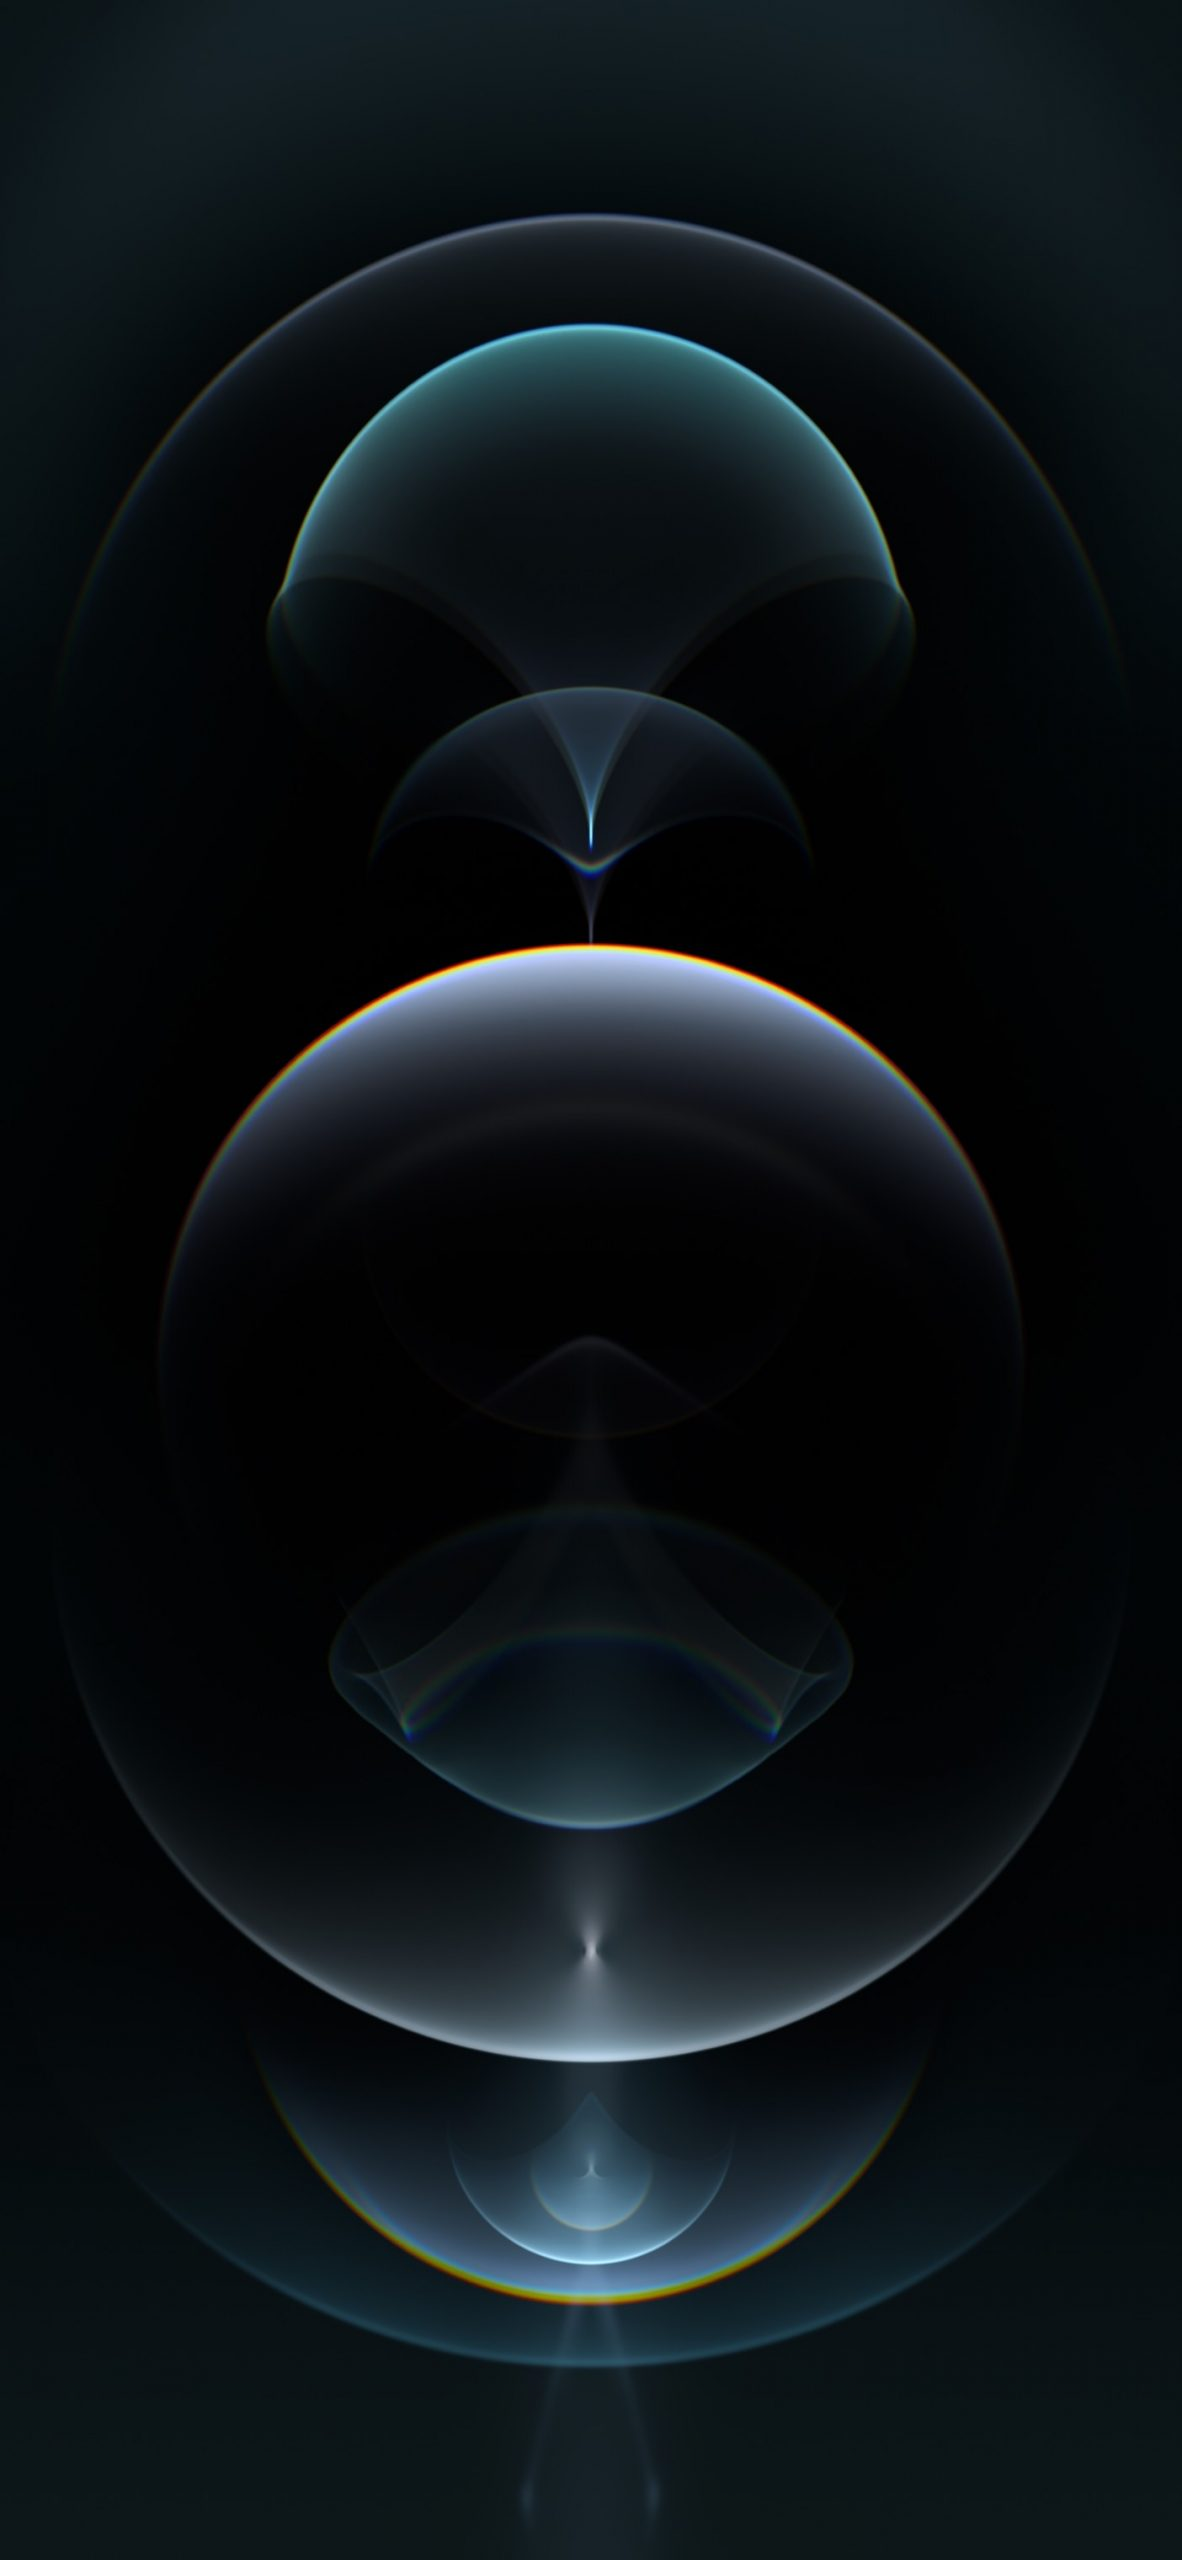 apple iphone 12 pro wallpapers 8 scaled